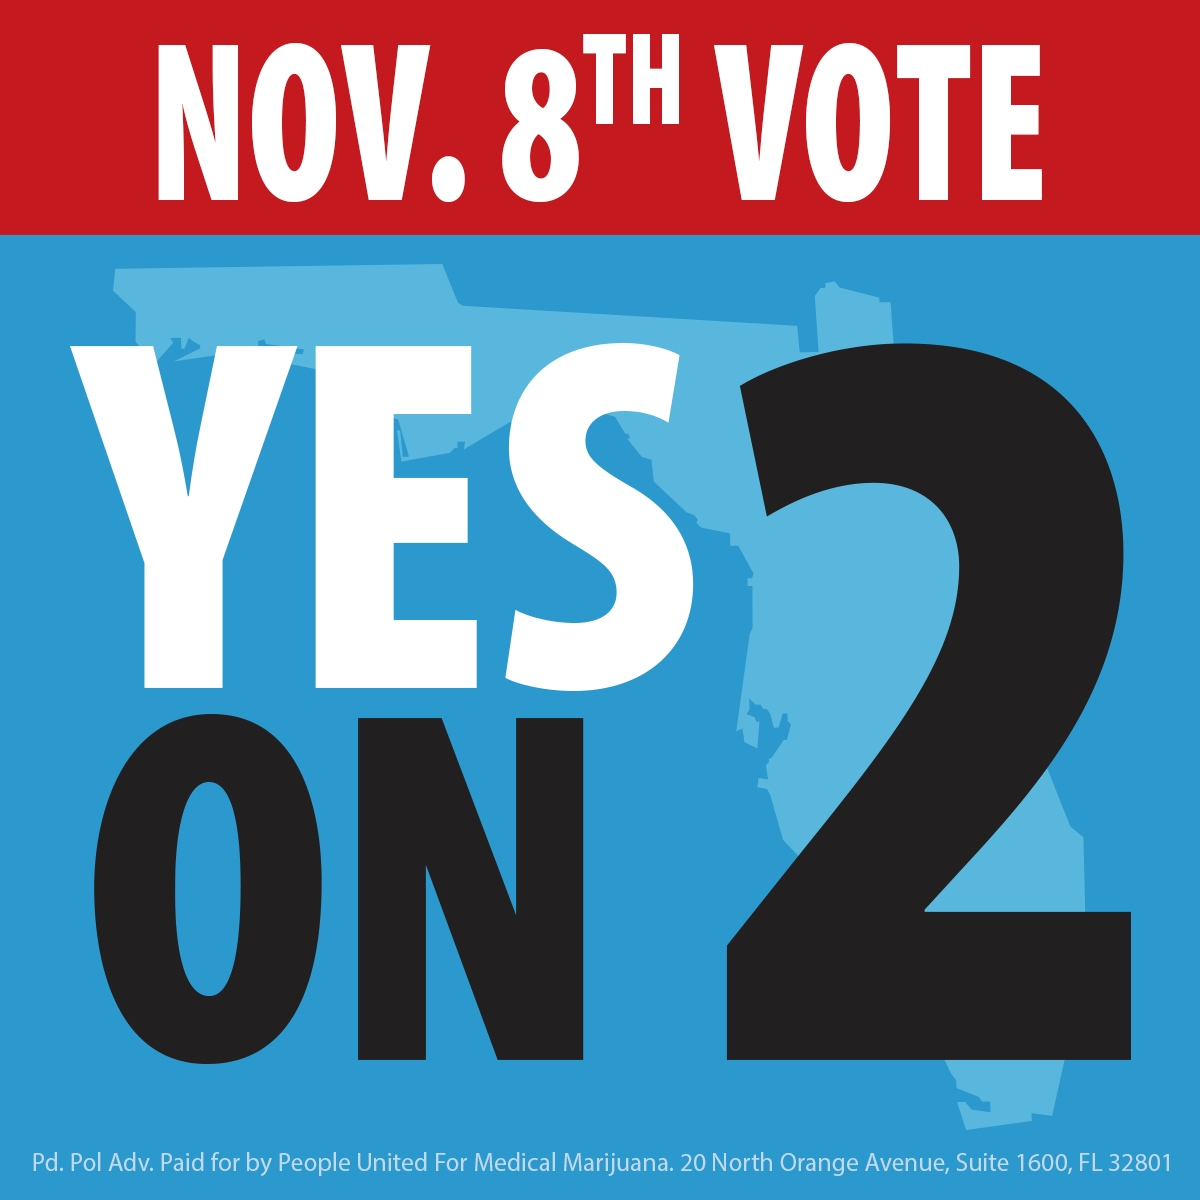 YesOn2-VOTE11-8-Facebook-PROFILE-PIC-4Distribution.jpg